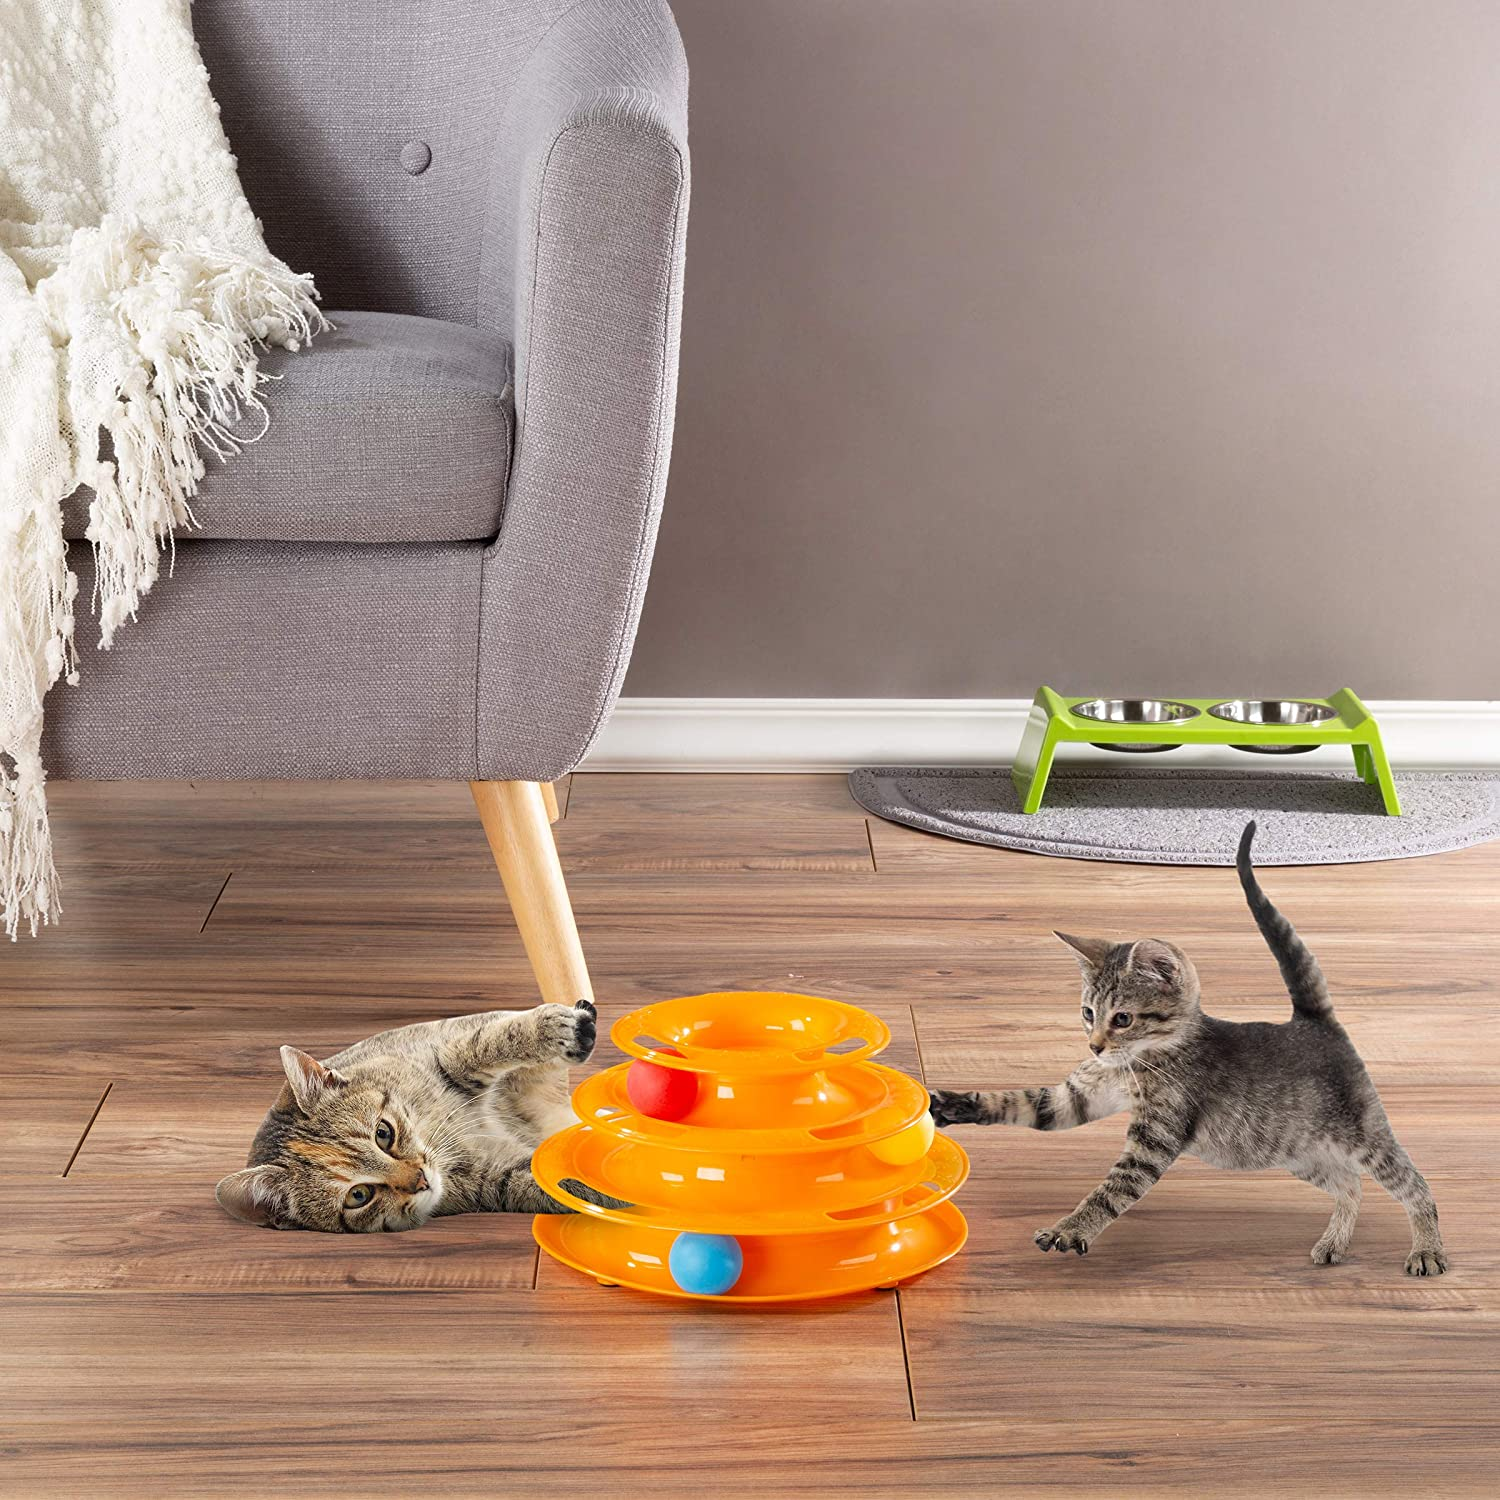 PETMAKER Interactive 4 years warranty Cat Toy Ball Directly managed store Roller Level 3 R Tiered Tower-